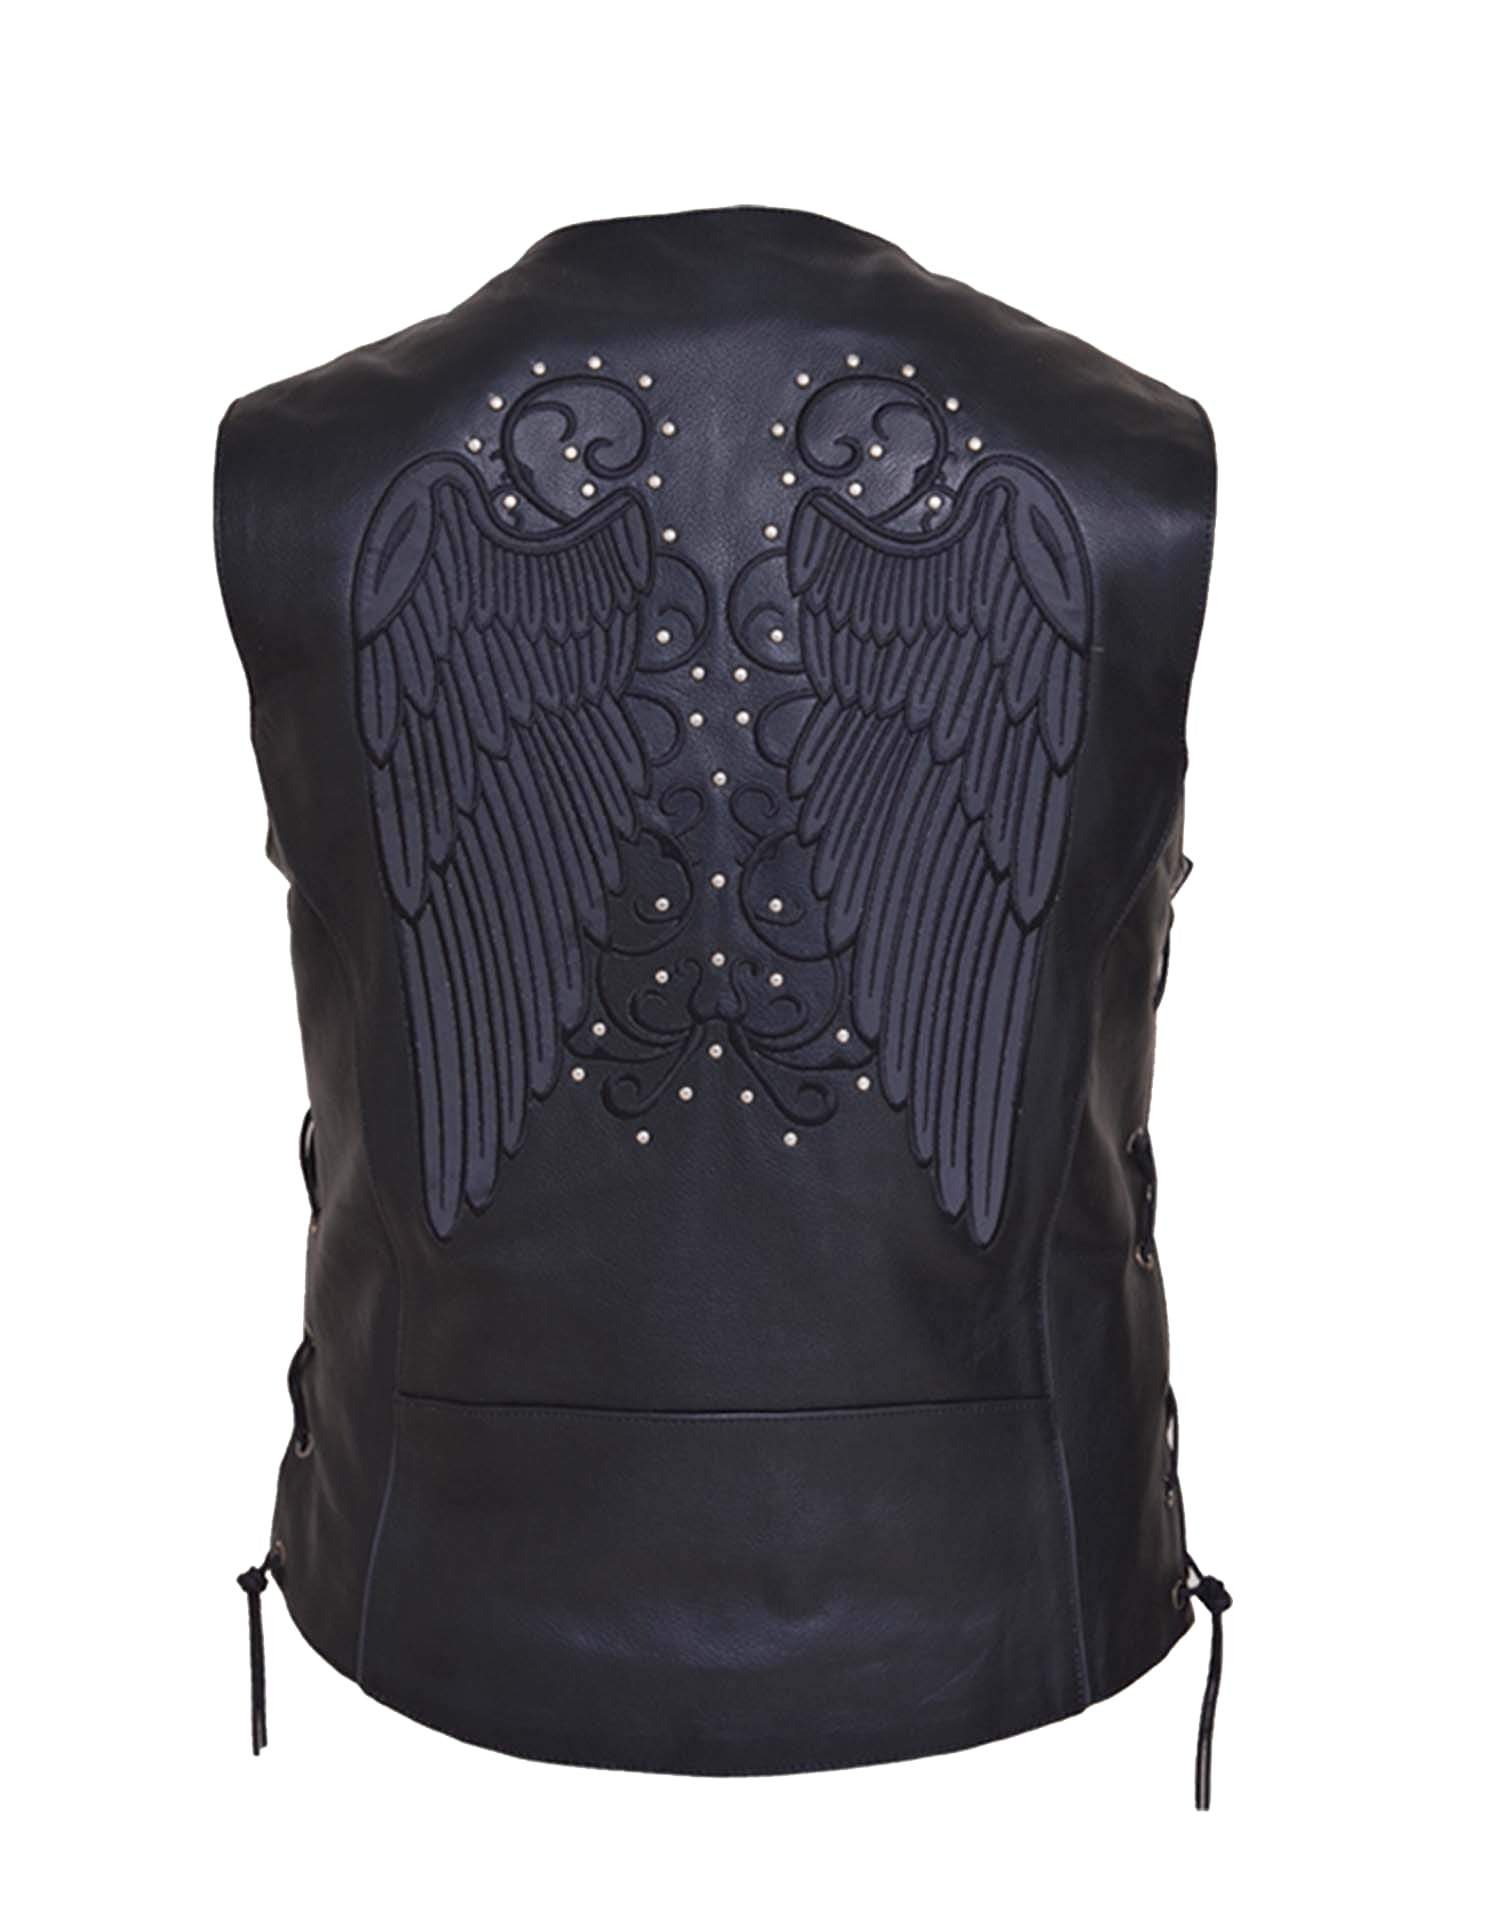 Women's Motorcycle Premium Leather Vest - Dark Gray Wing Embroidery - SKU 6879-RF-UN